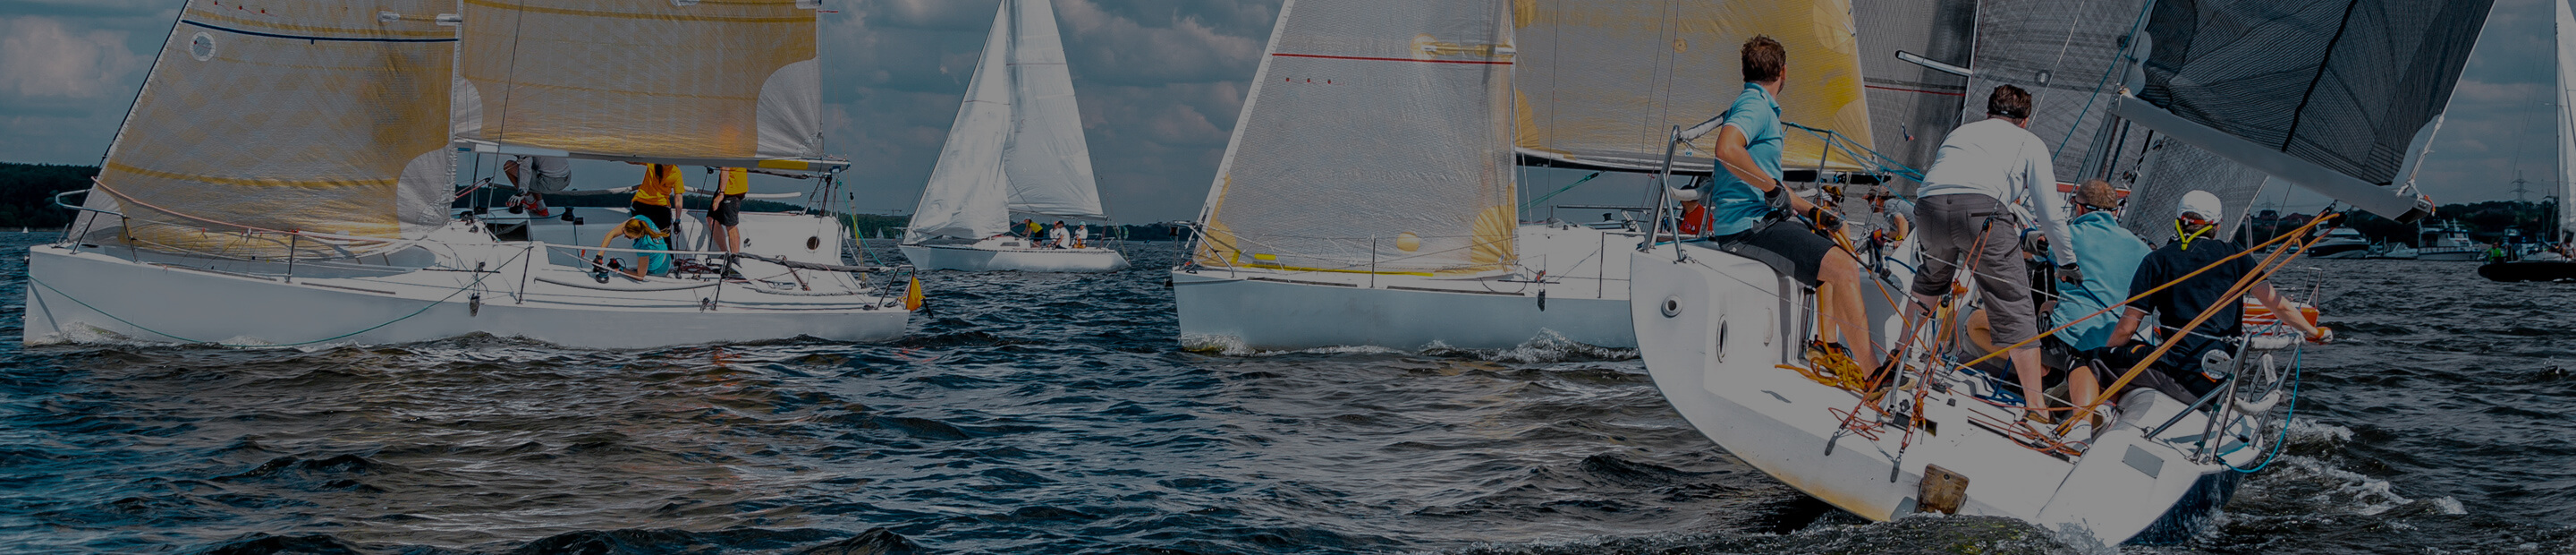 Sailing regattas and places in Azerbaijan